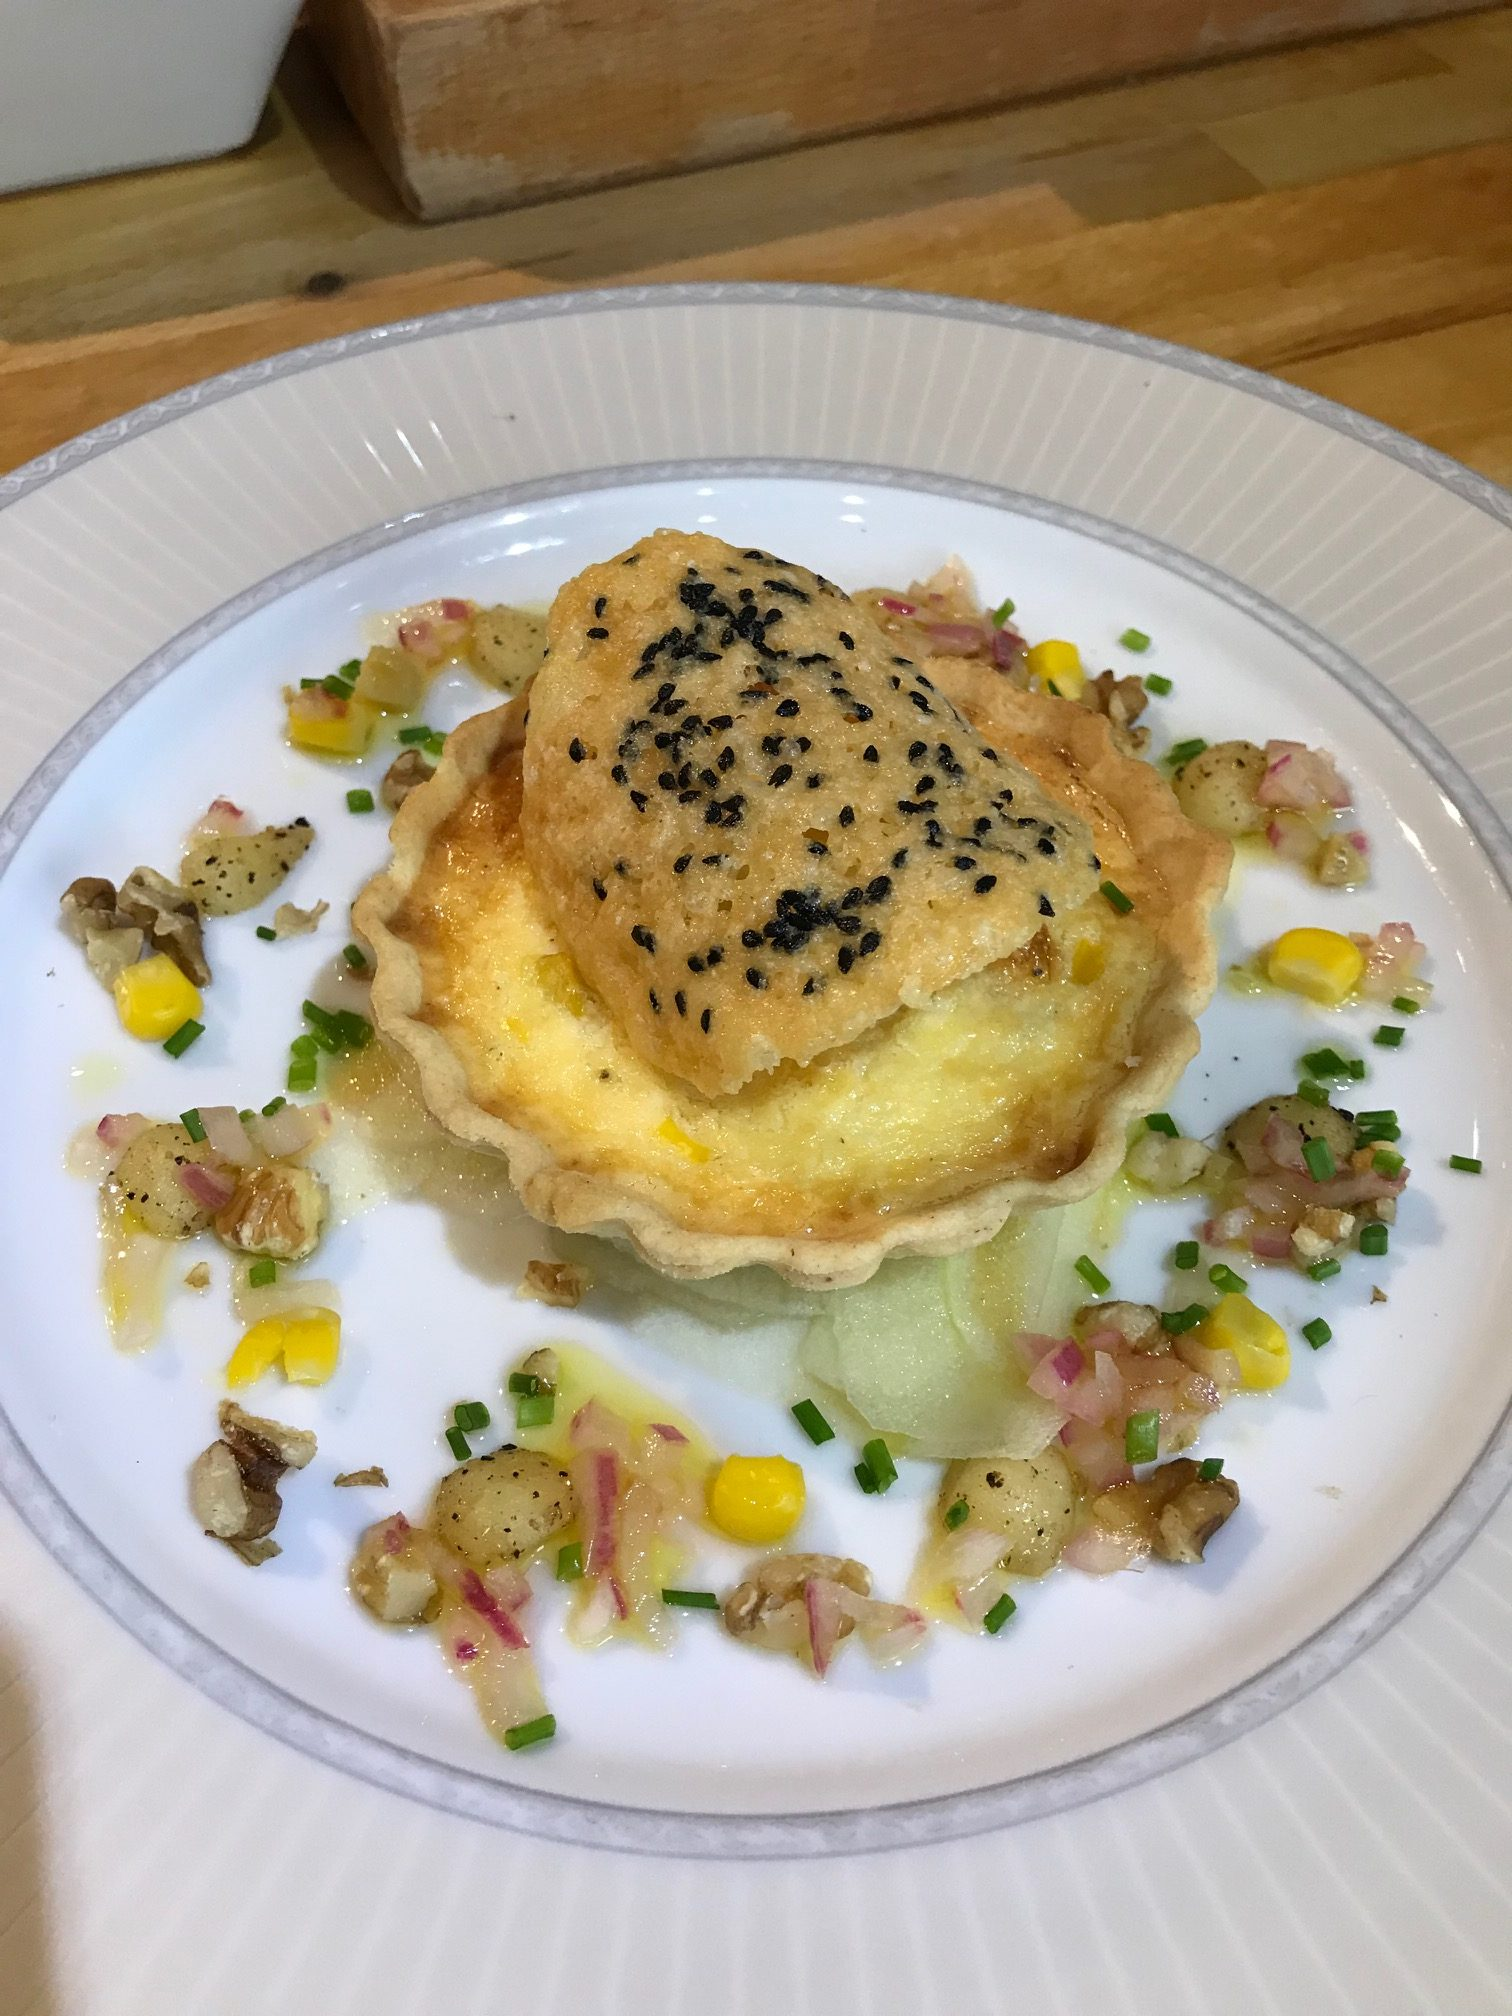 20190807 - Sweetcorn Tart with Apple and Walnut Dressing